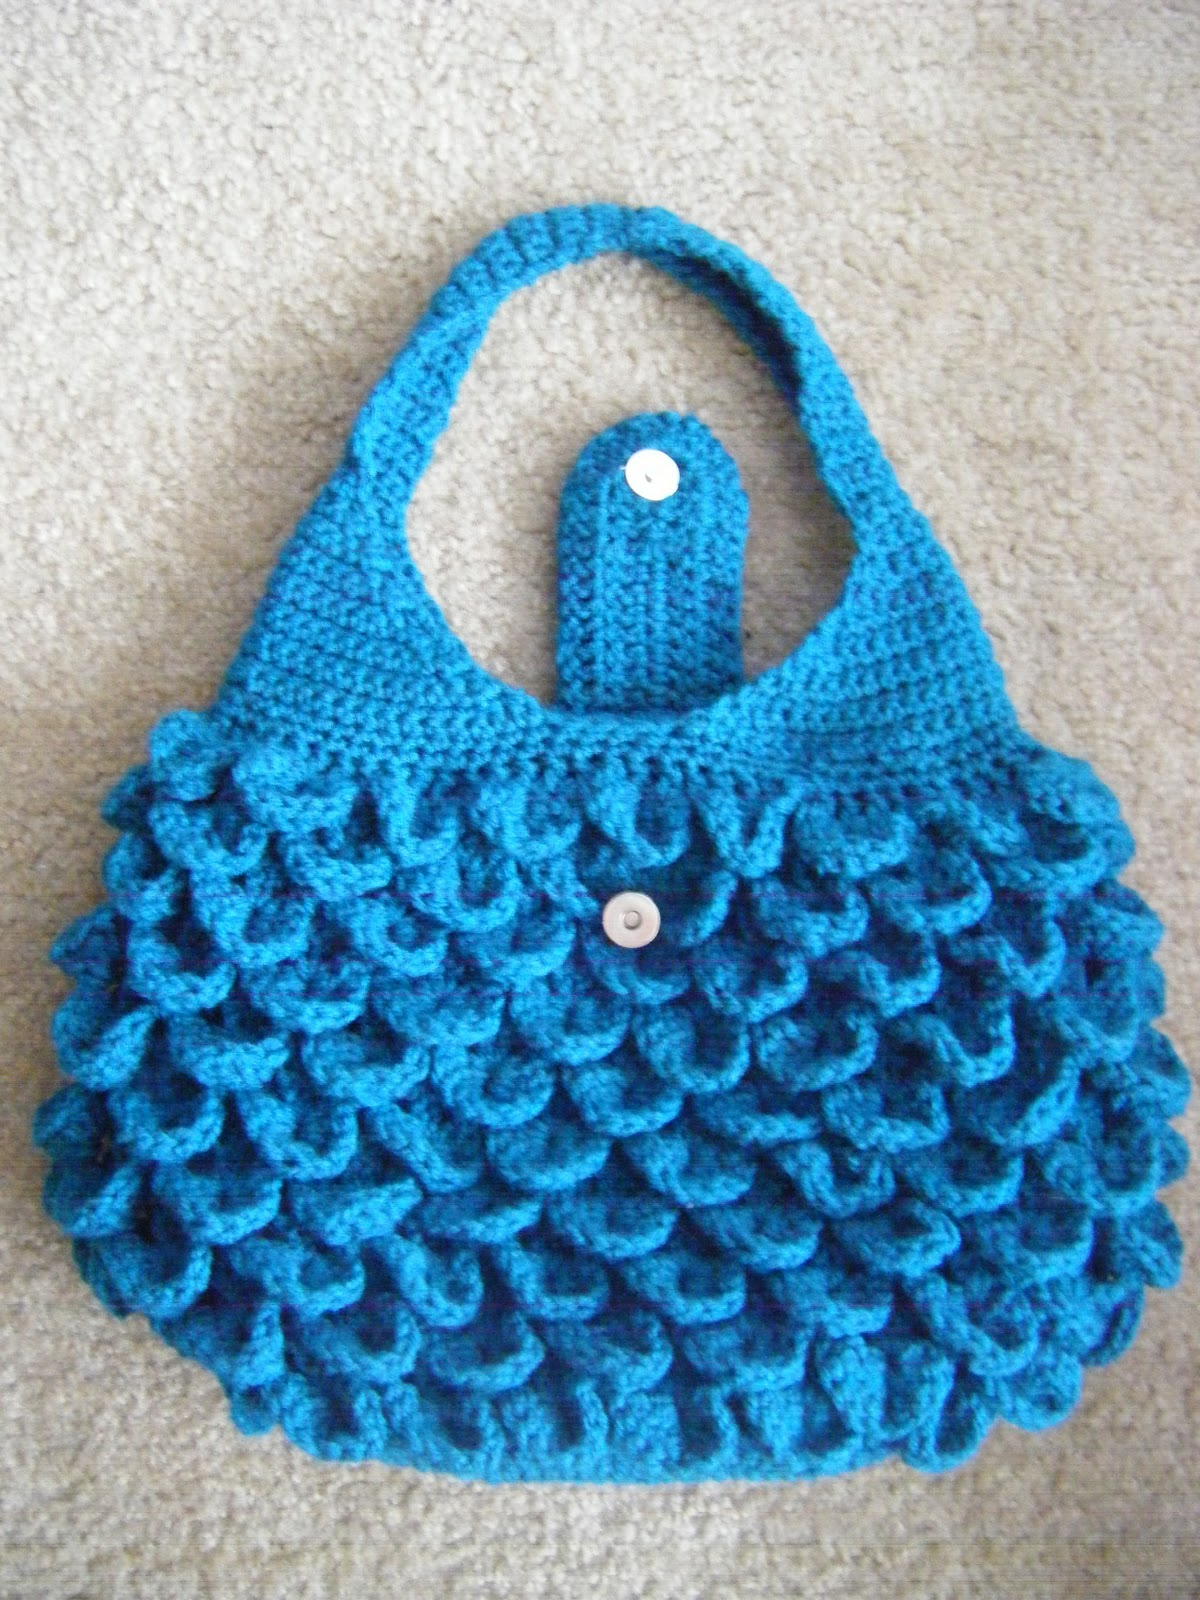 Crochet Patterns For Purses And Bags : Best Patterns: Crocodile Crochet Bag PATTERN